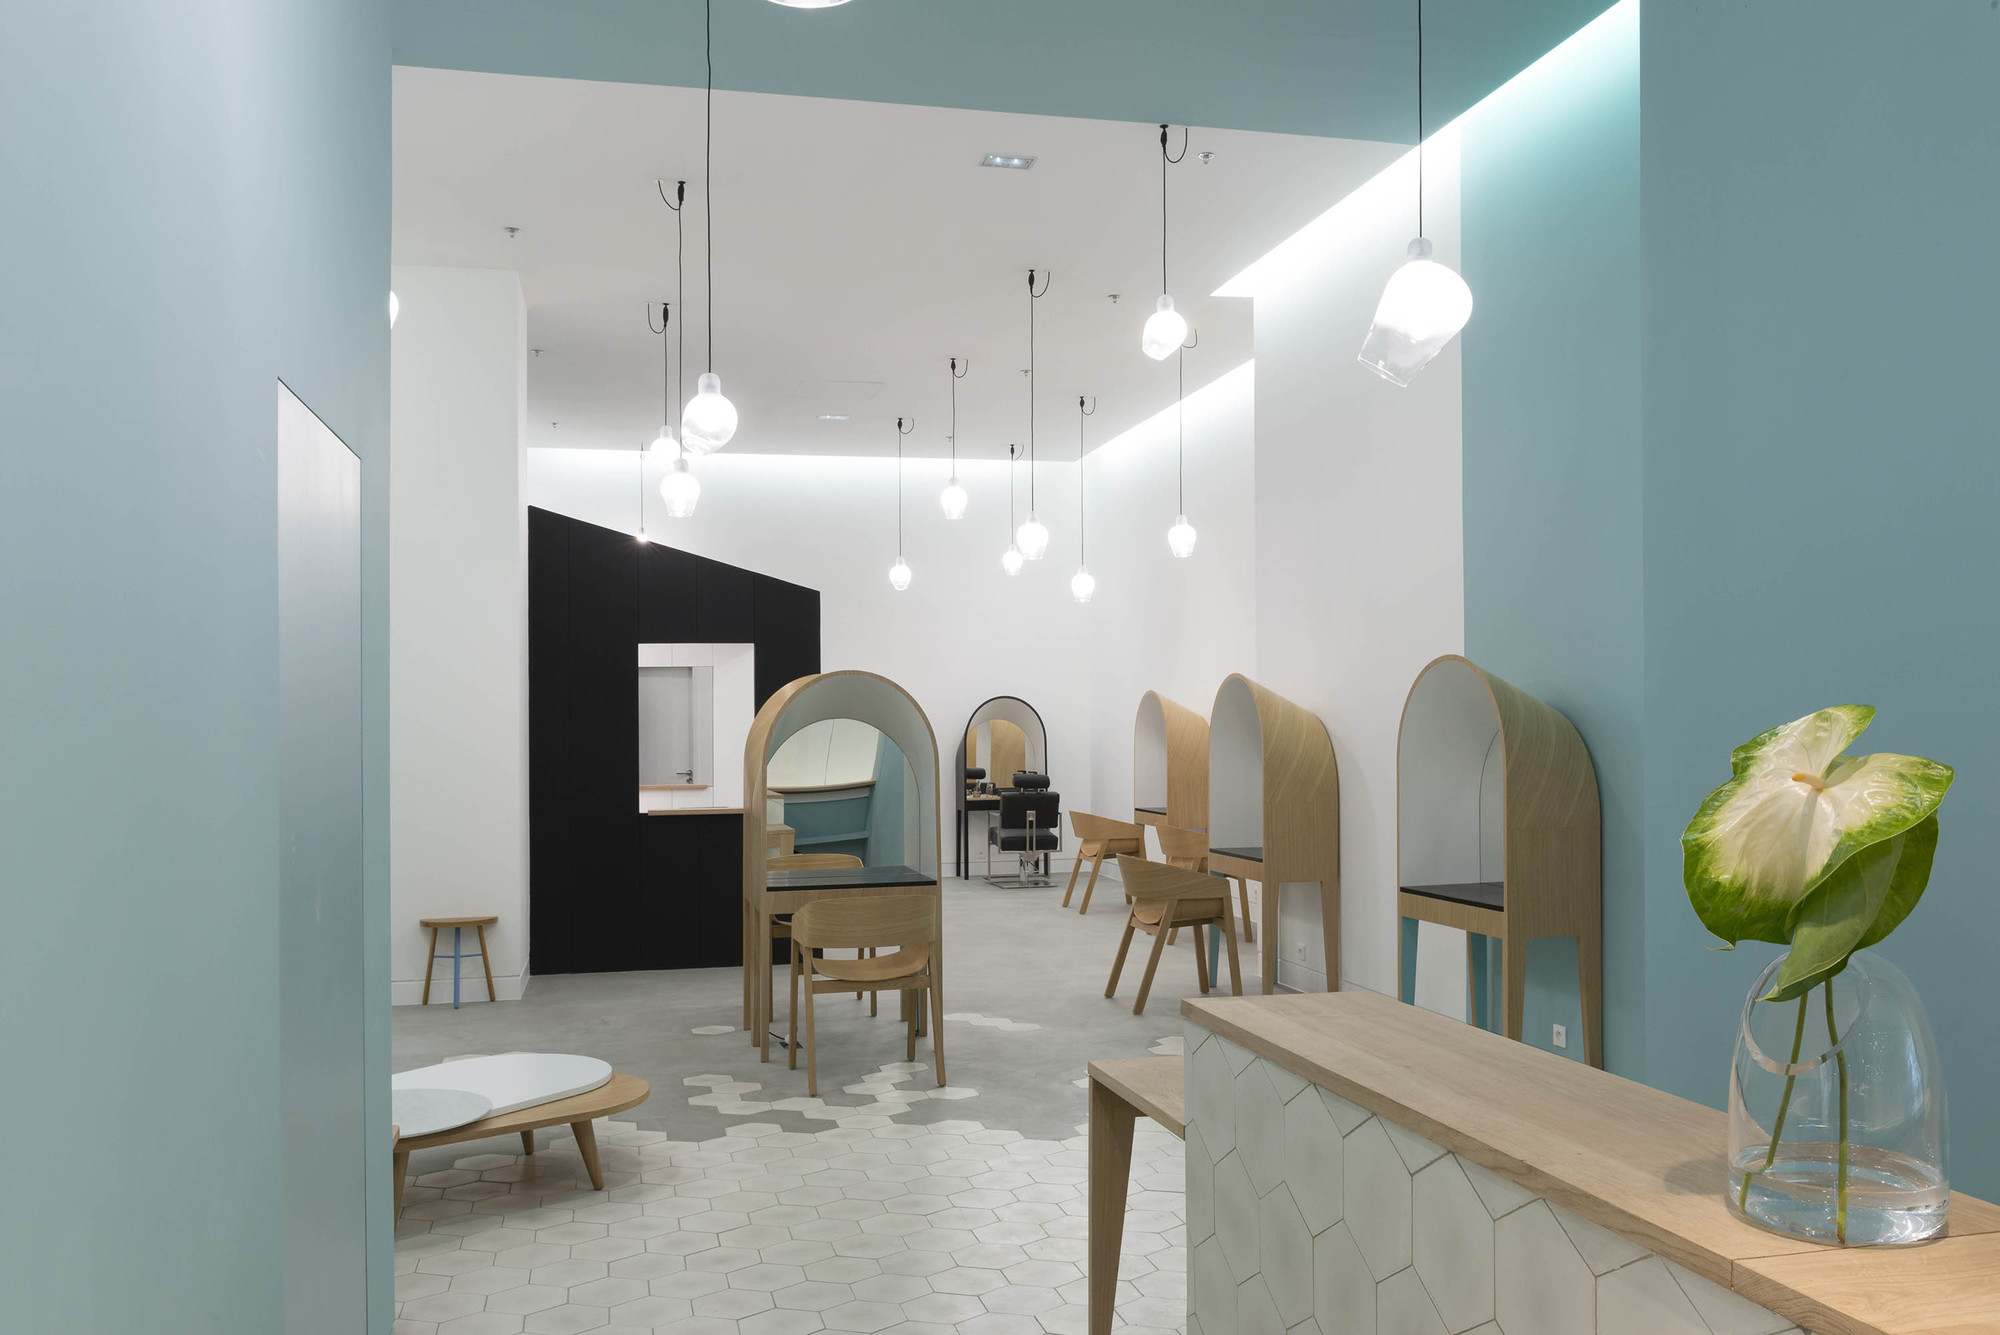 Le Coiffeur / Margaux Keller Design Studio + Bertrand Guillon ...